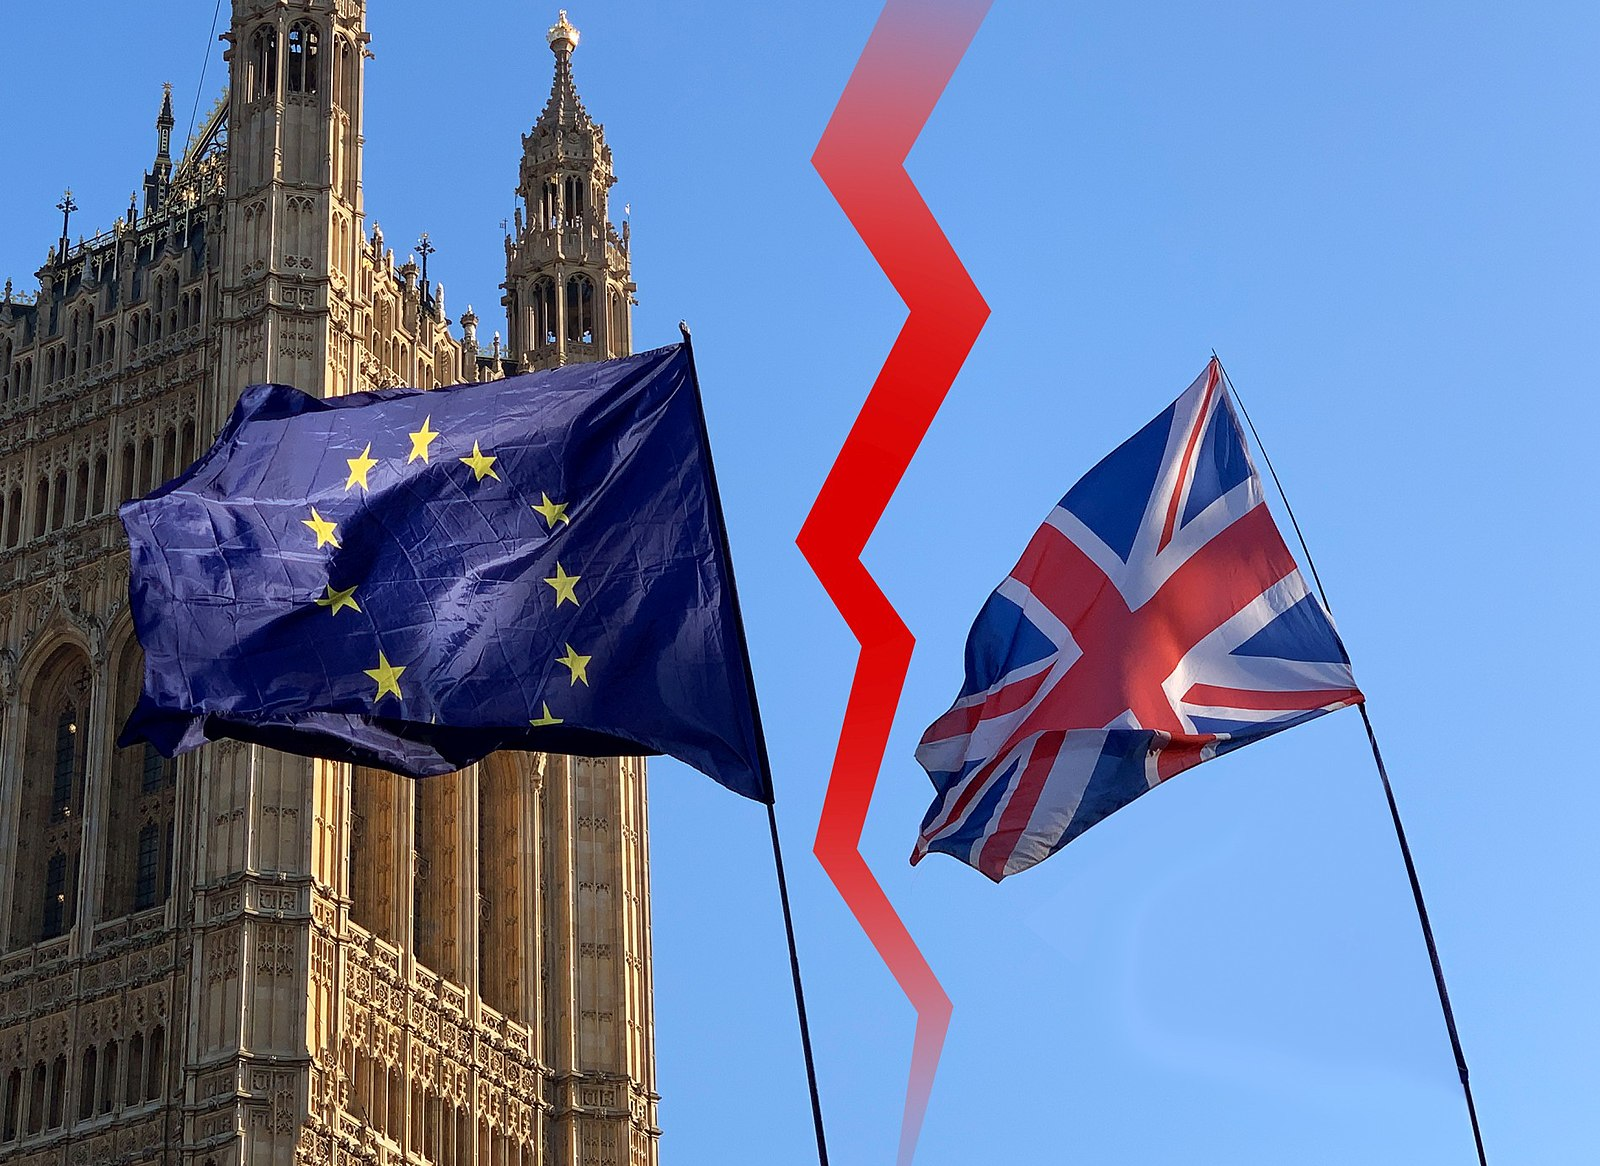 UK: The European Central Bank's revised monetary policy strategy